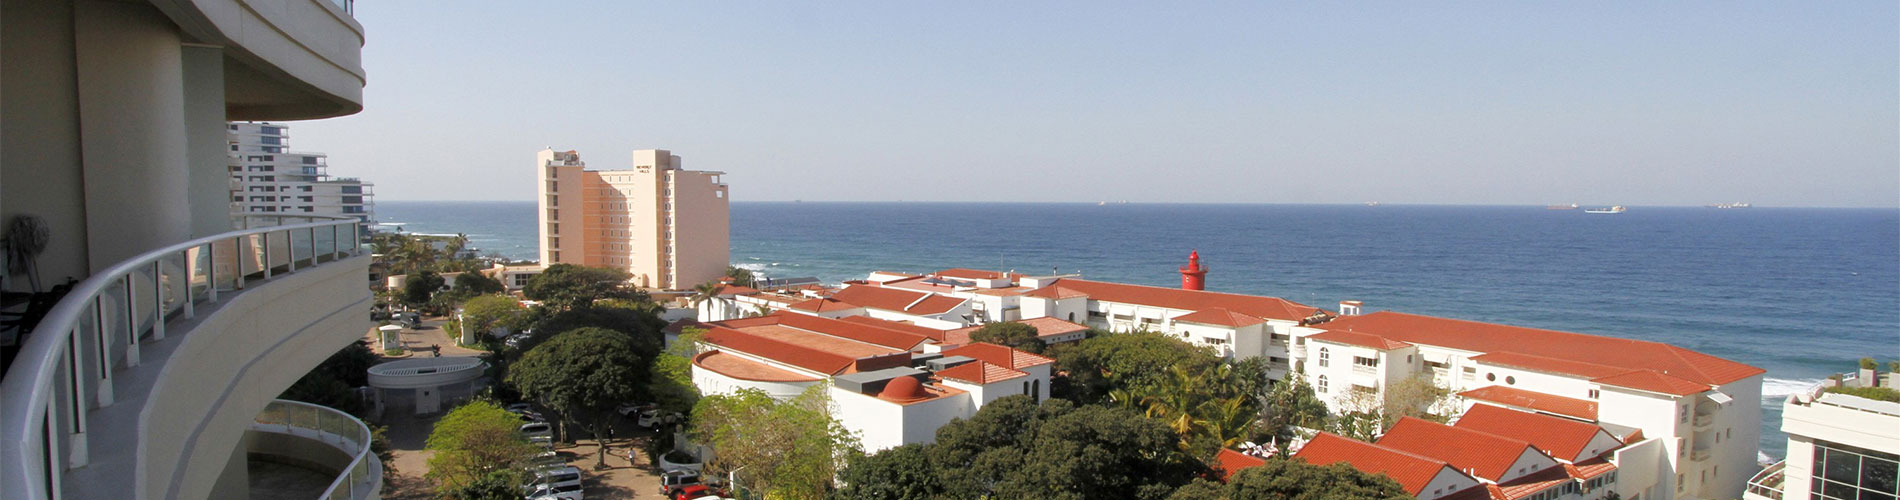 umhlanga beach holiday rental 15